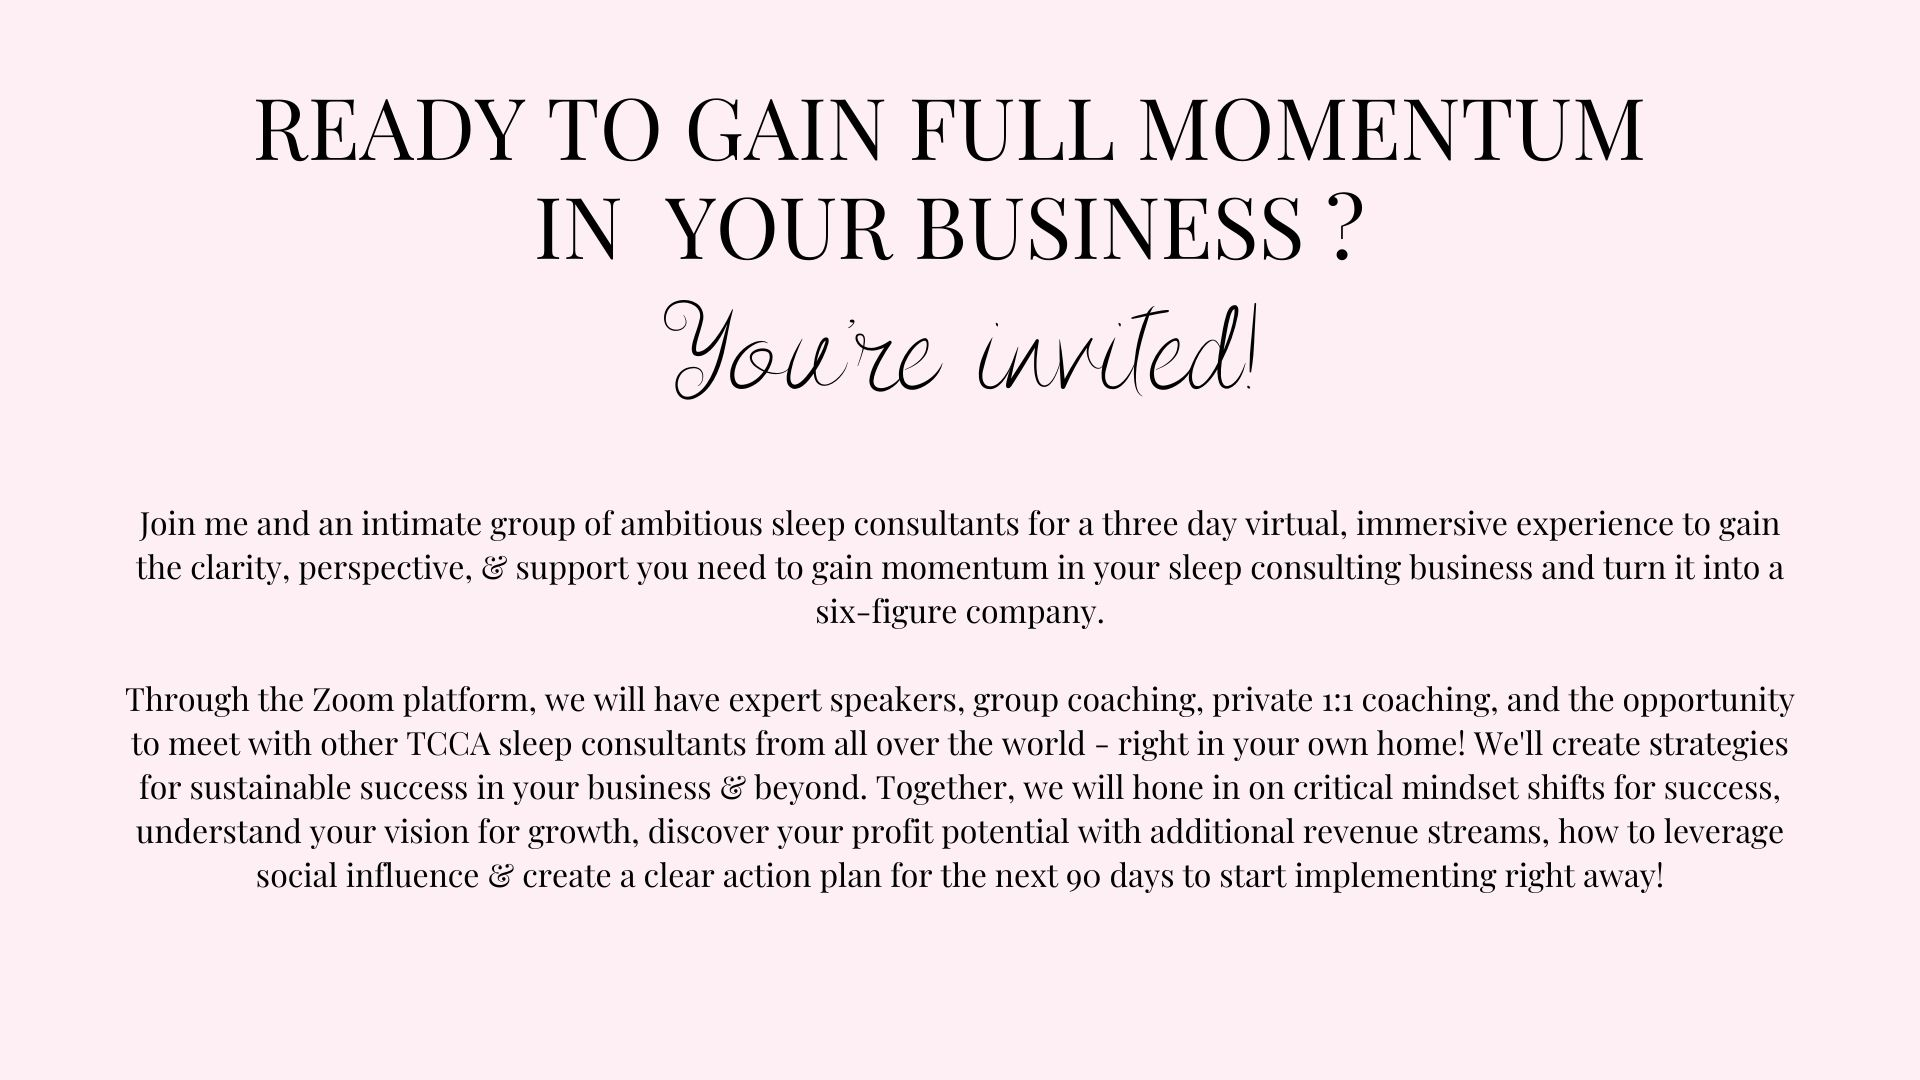 Details about the Momentum virtual retreat